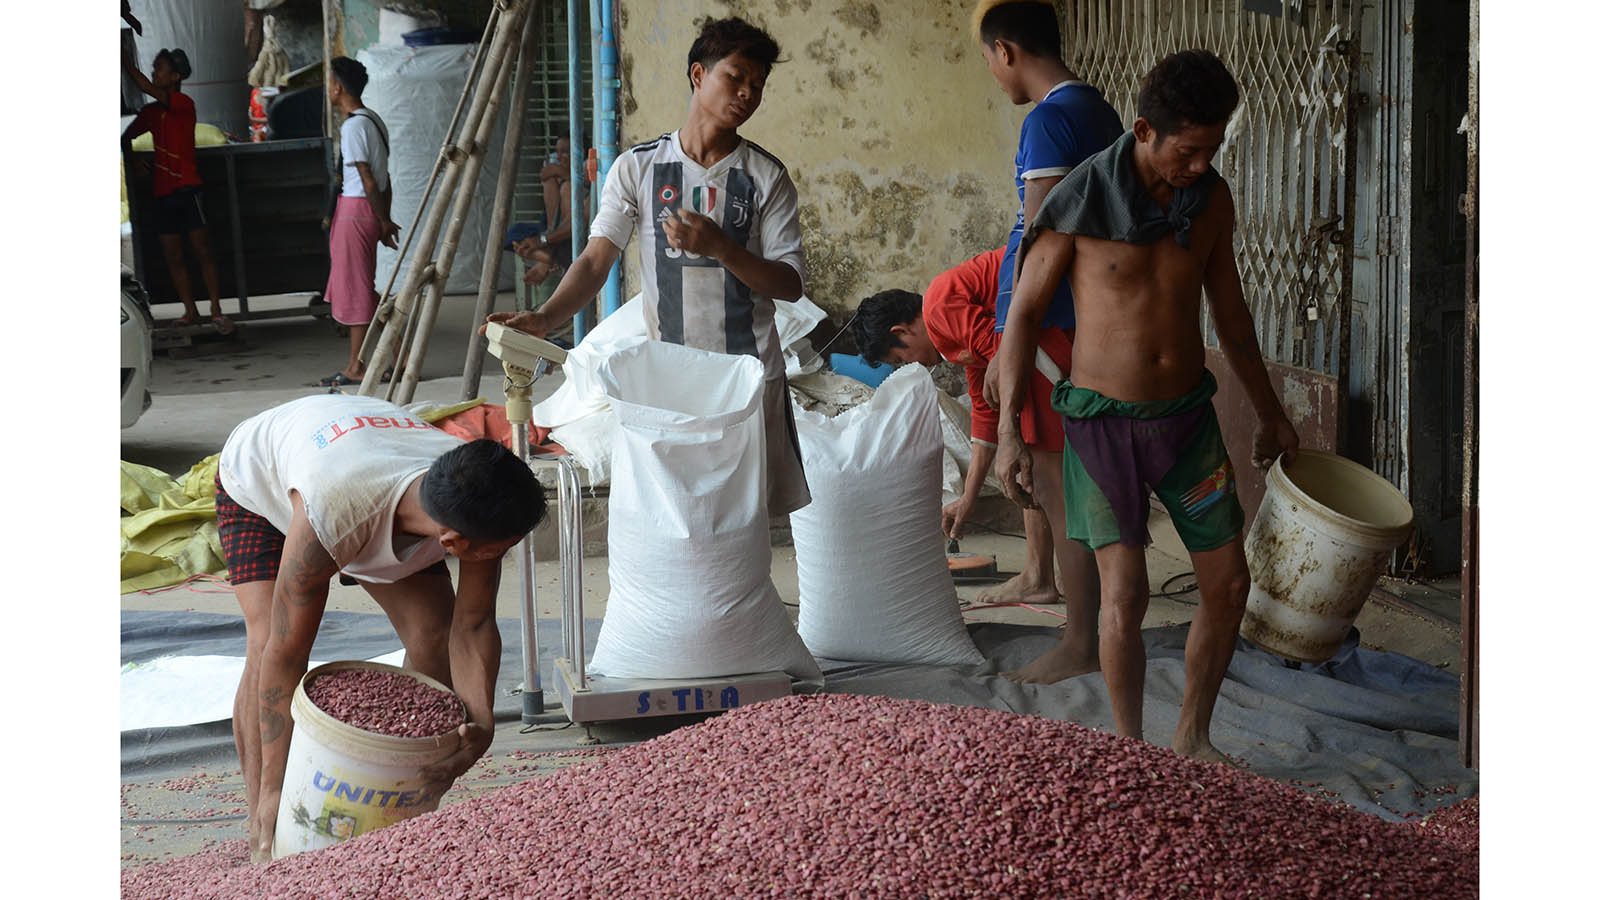 Workers weighing the beans in bags on a weighing scale. Photo: Phoe Khwar